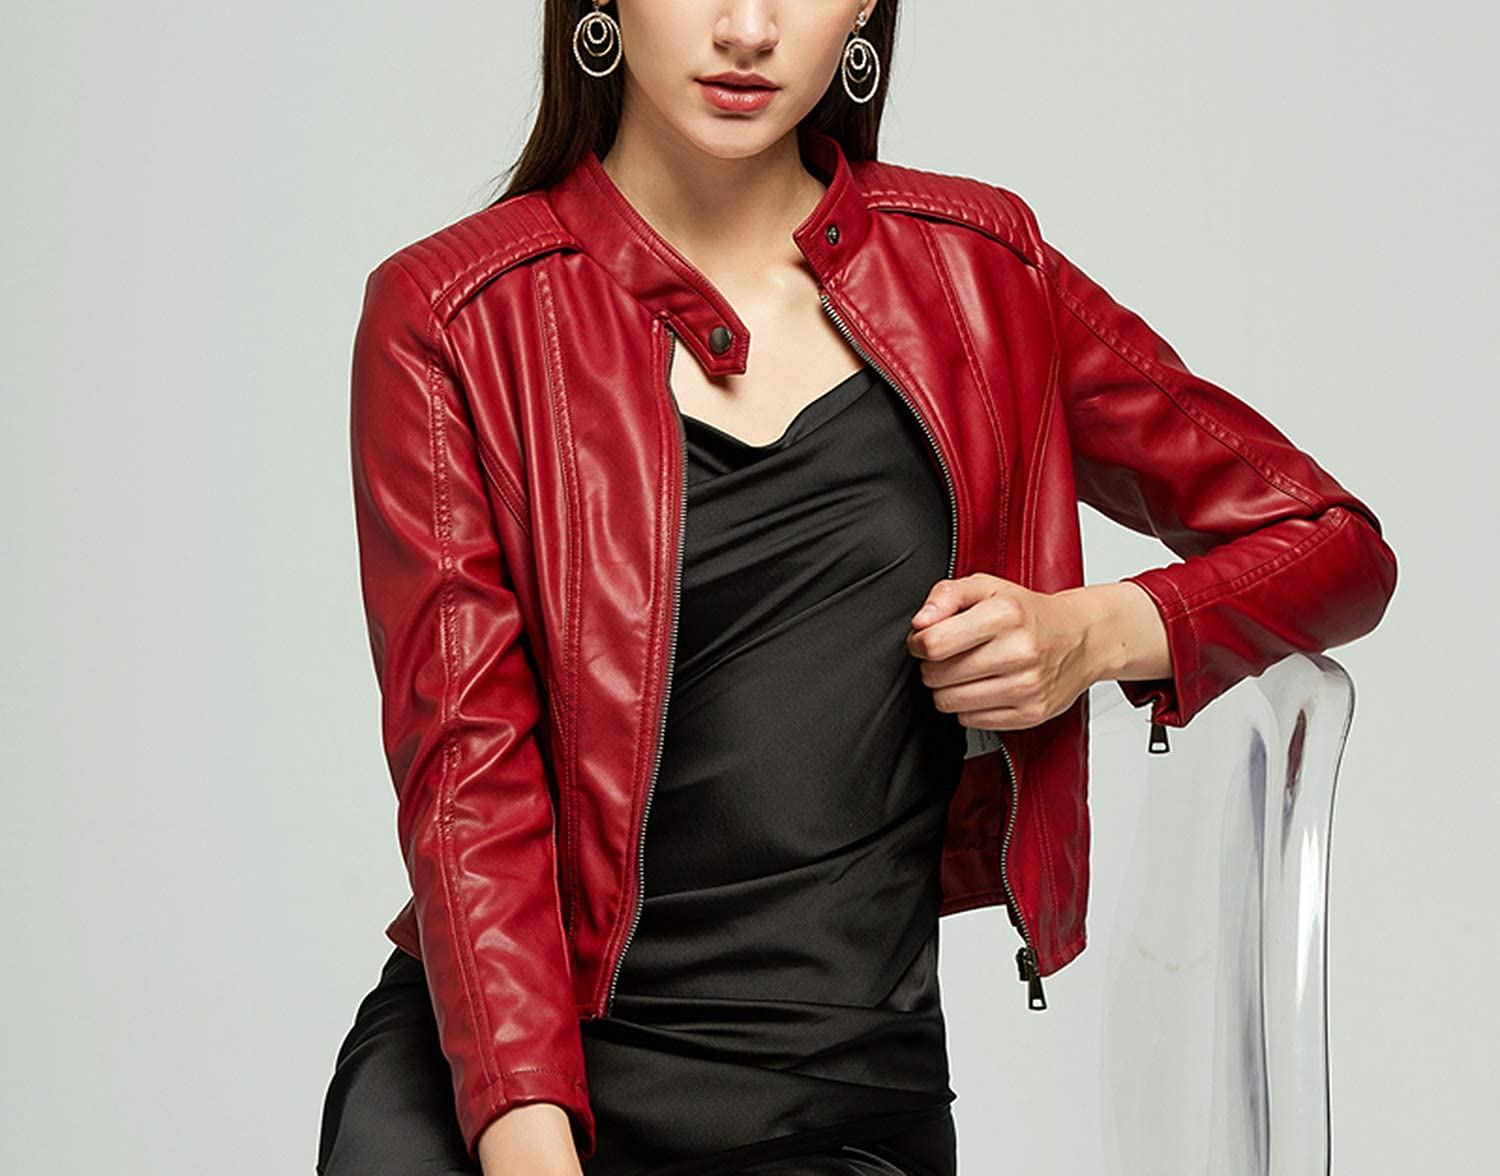 Spring Autumn Women's Leather Jacket Jacket PU Women's Leather Jacket Orange